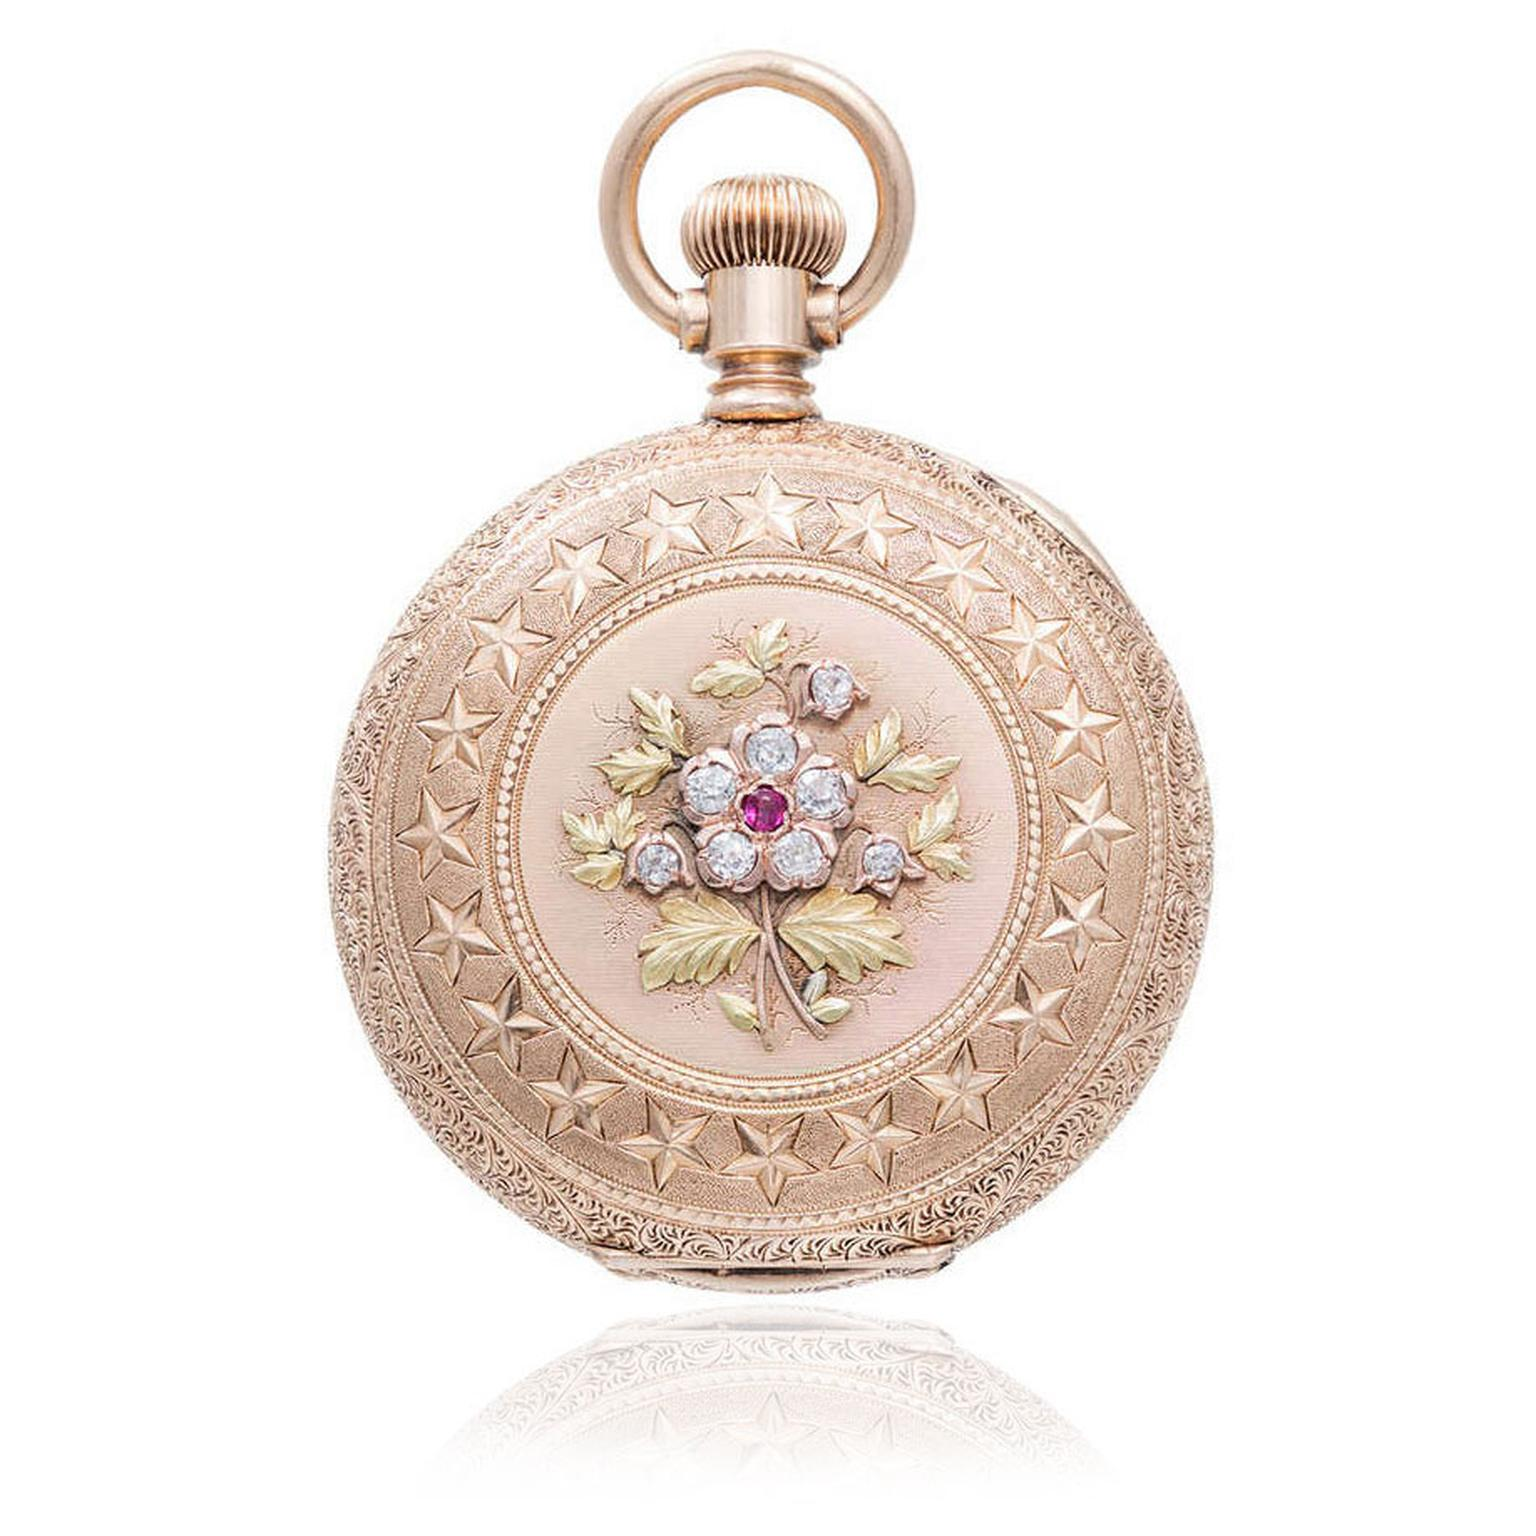 Peter Suchy pocket watch